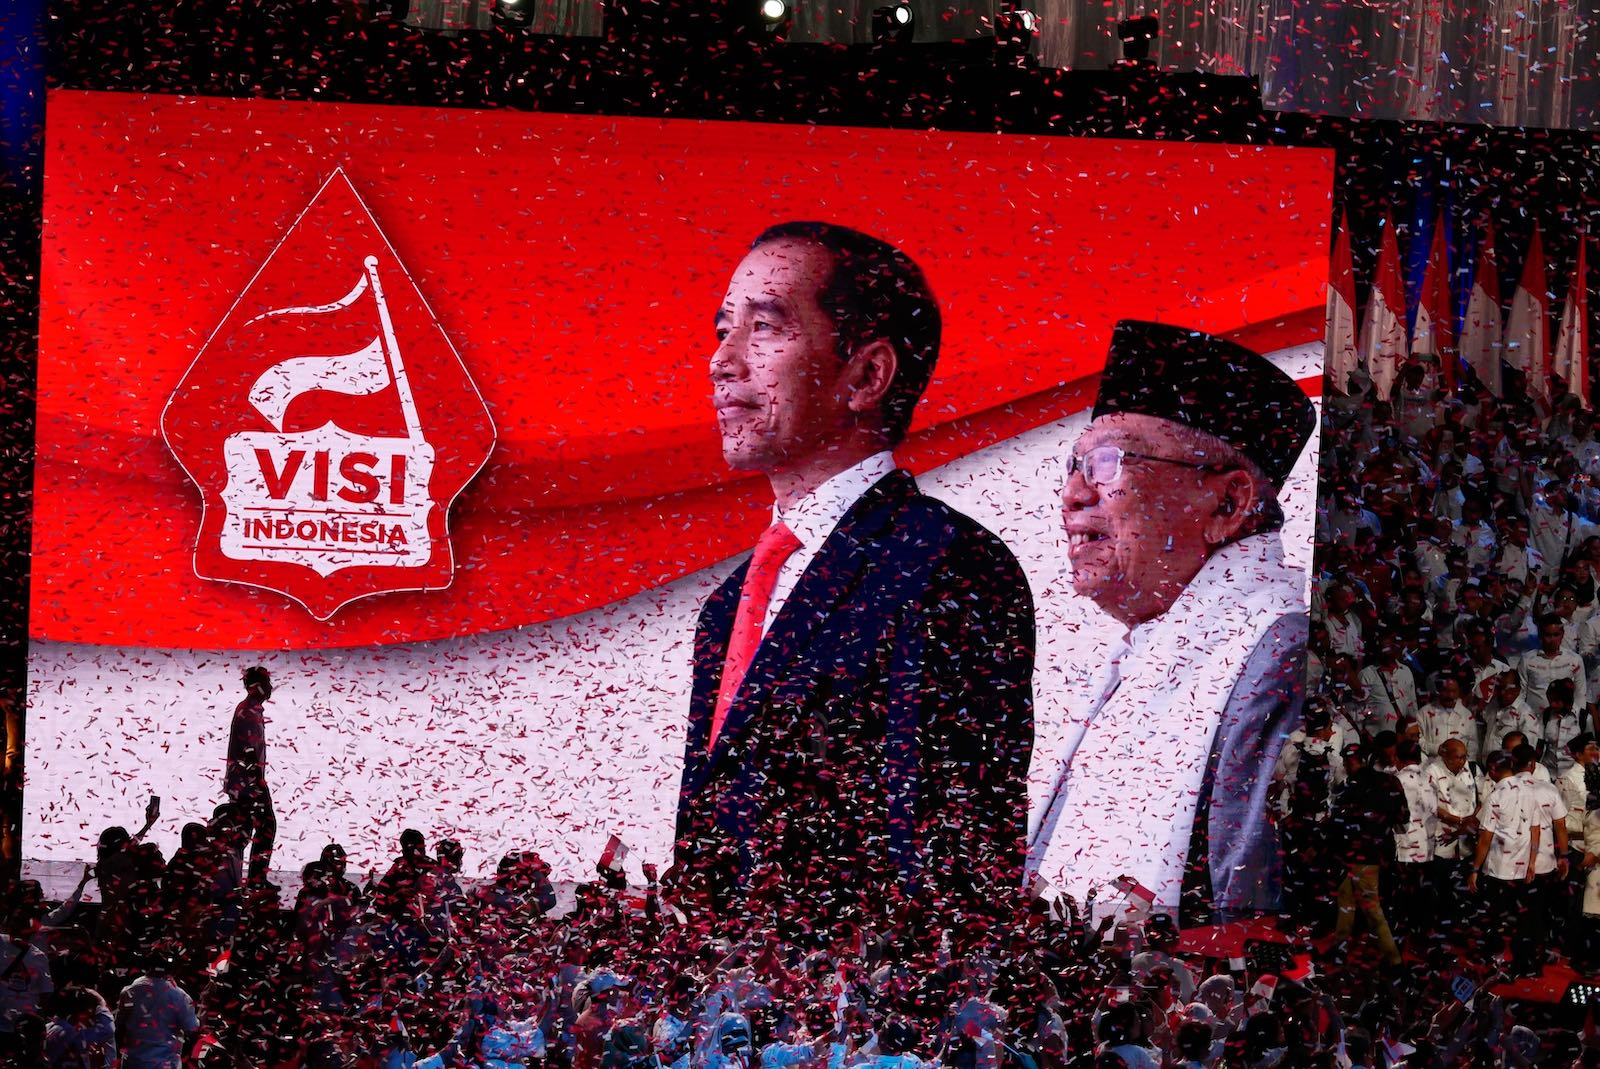 Preparations earlier this month for Jokowi to deliver a presidential vision and mission following his recent election victory (Photo: Anton Raharjo via Getty)